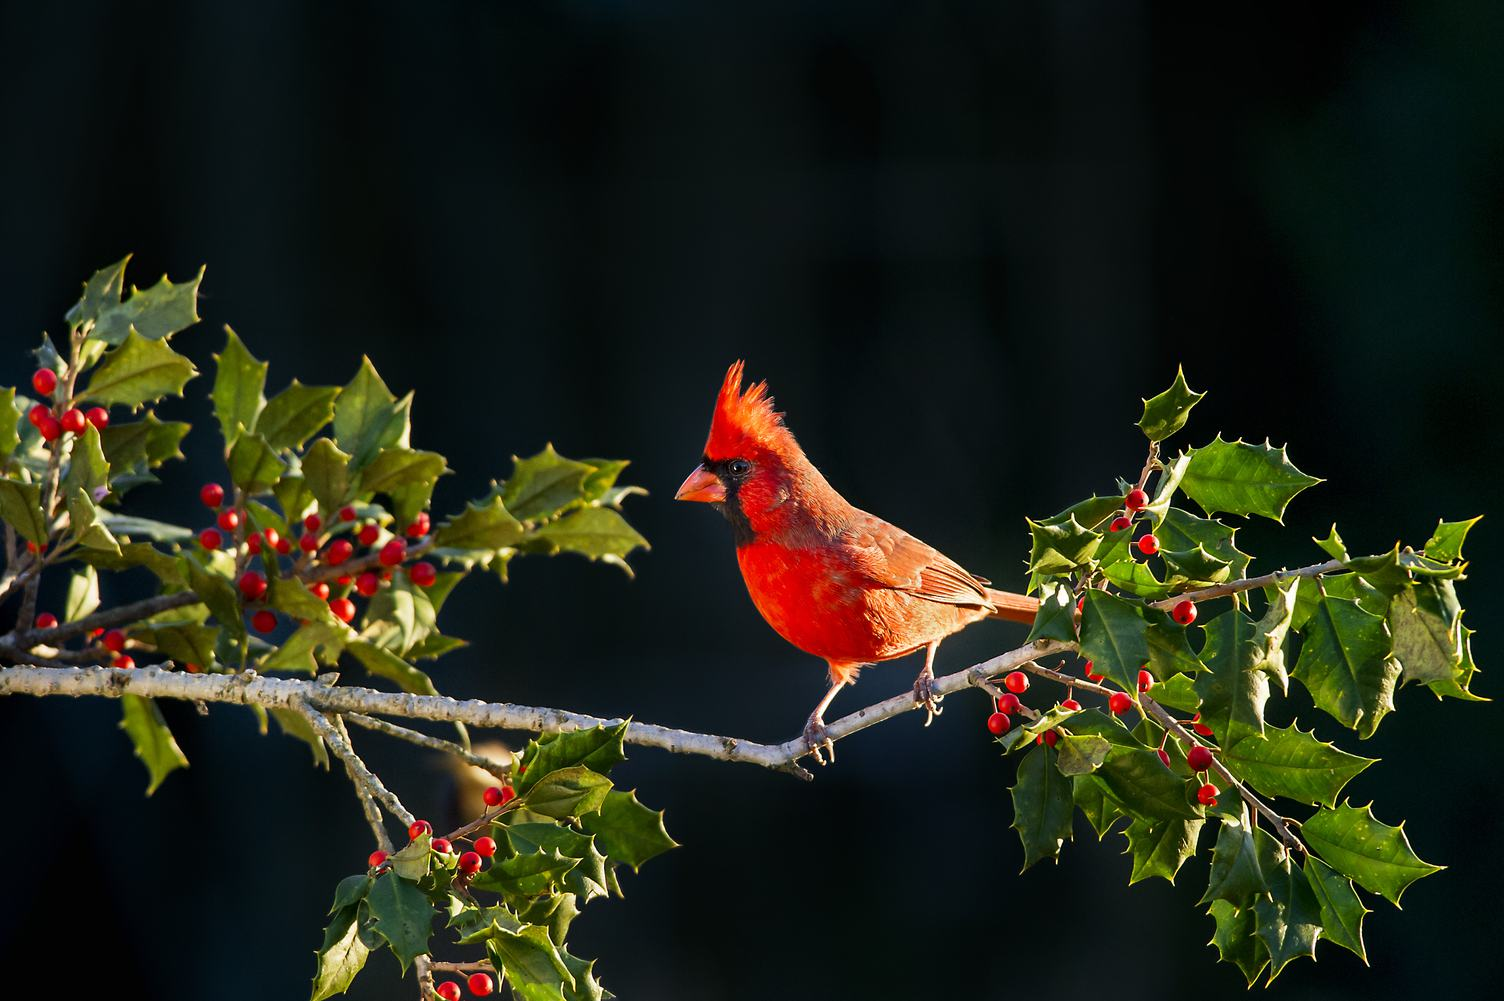 Male Northern Cardinal on Branch of Holly Tree